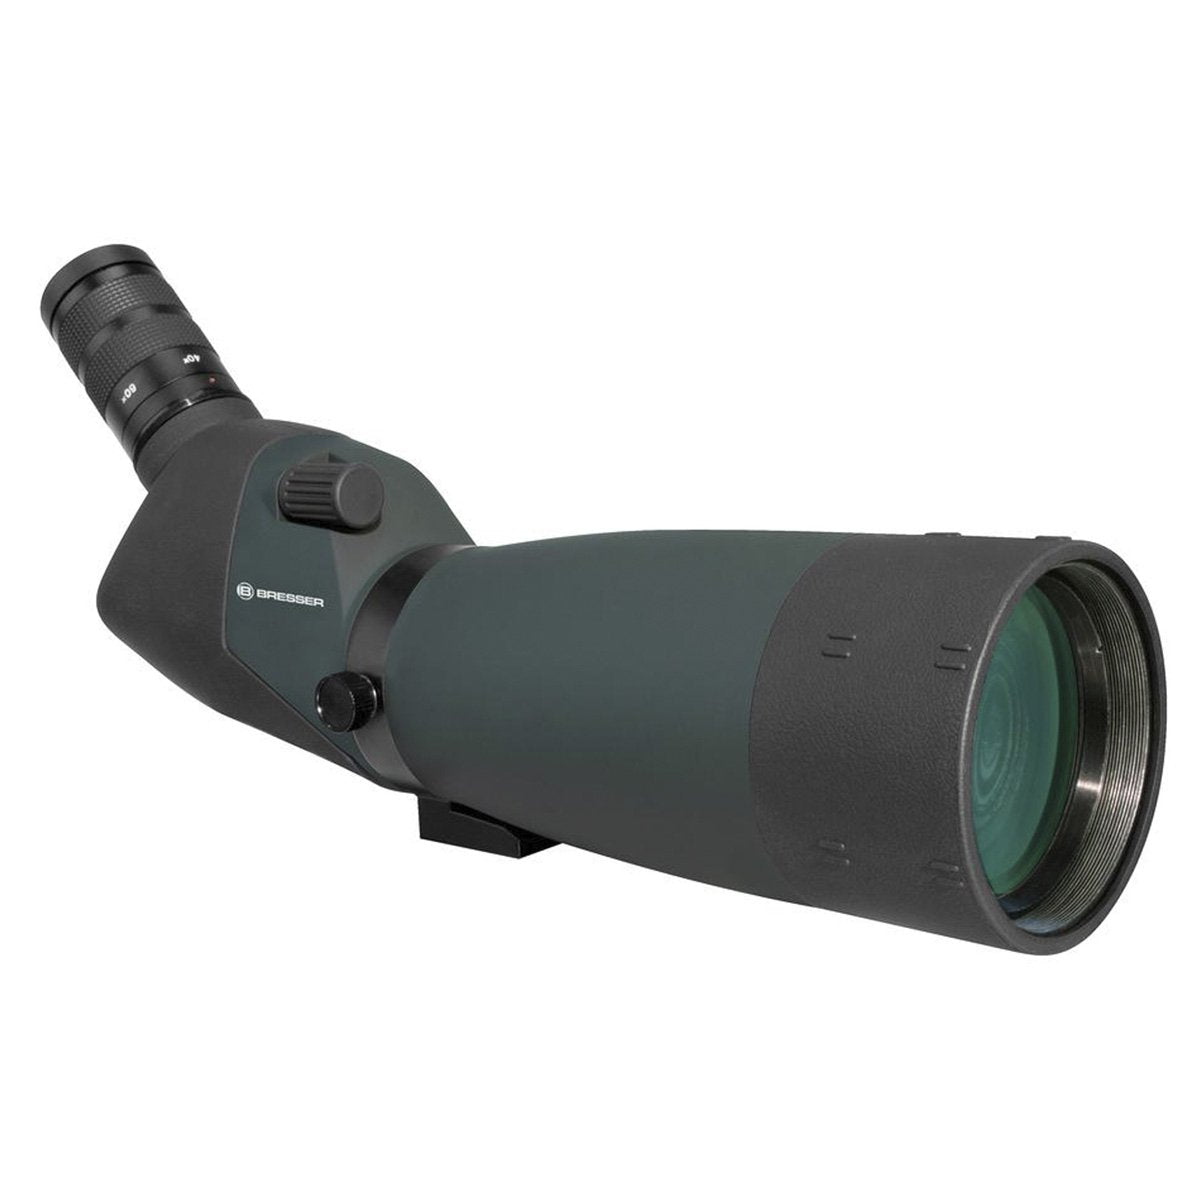 Bresser Pirsch 20-60x80mm 45° Spotting Scope